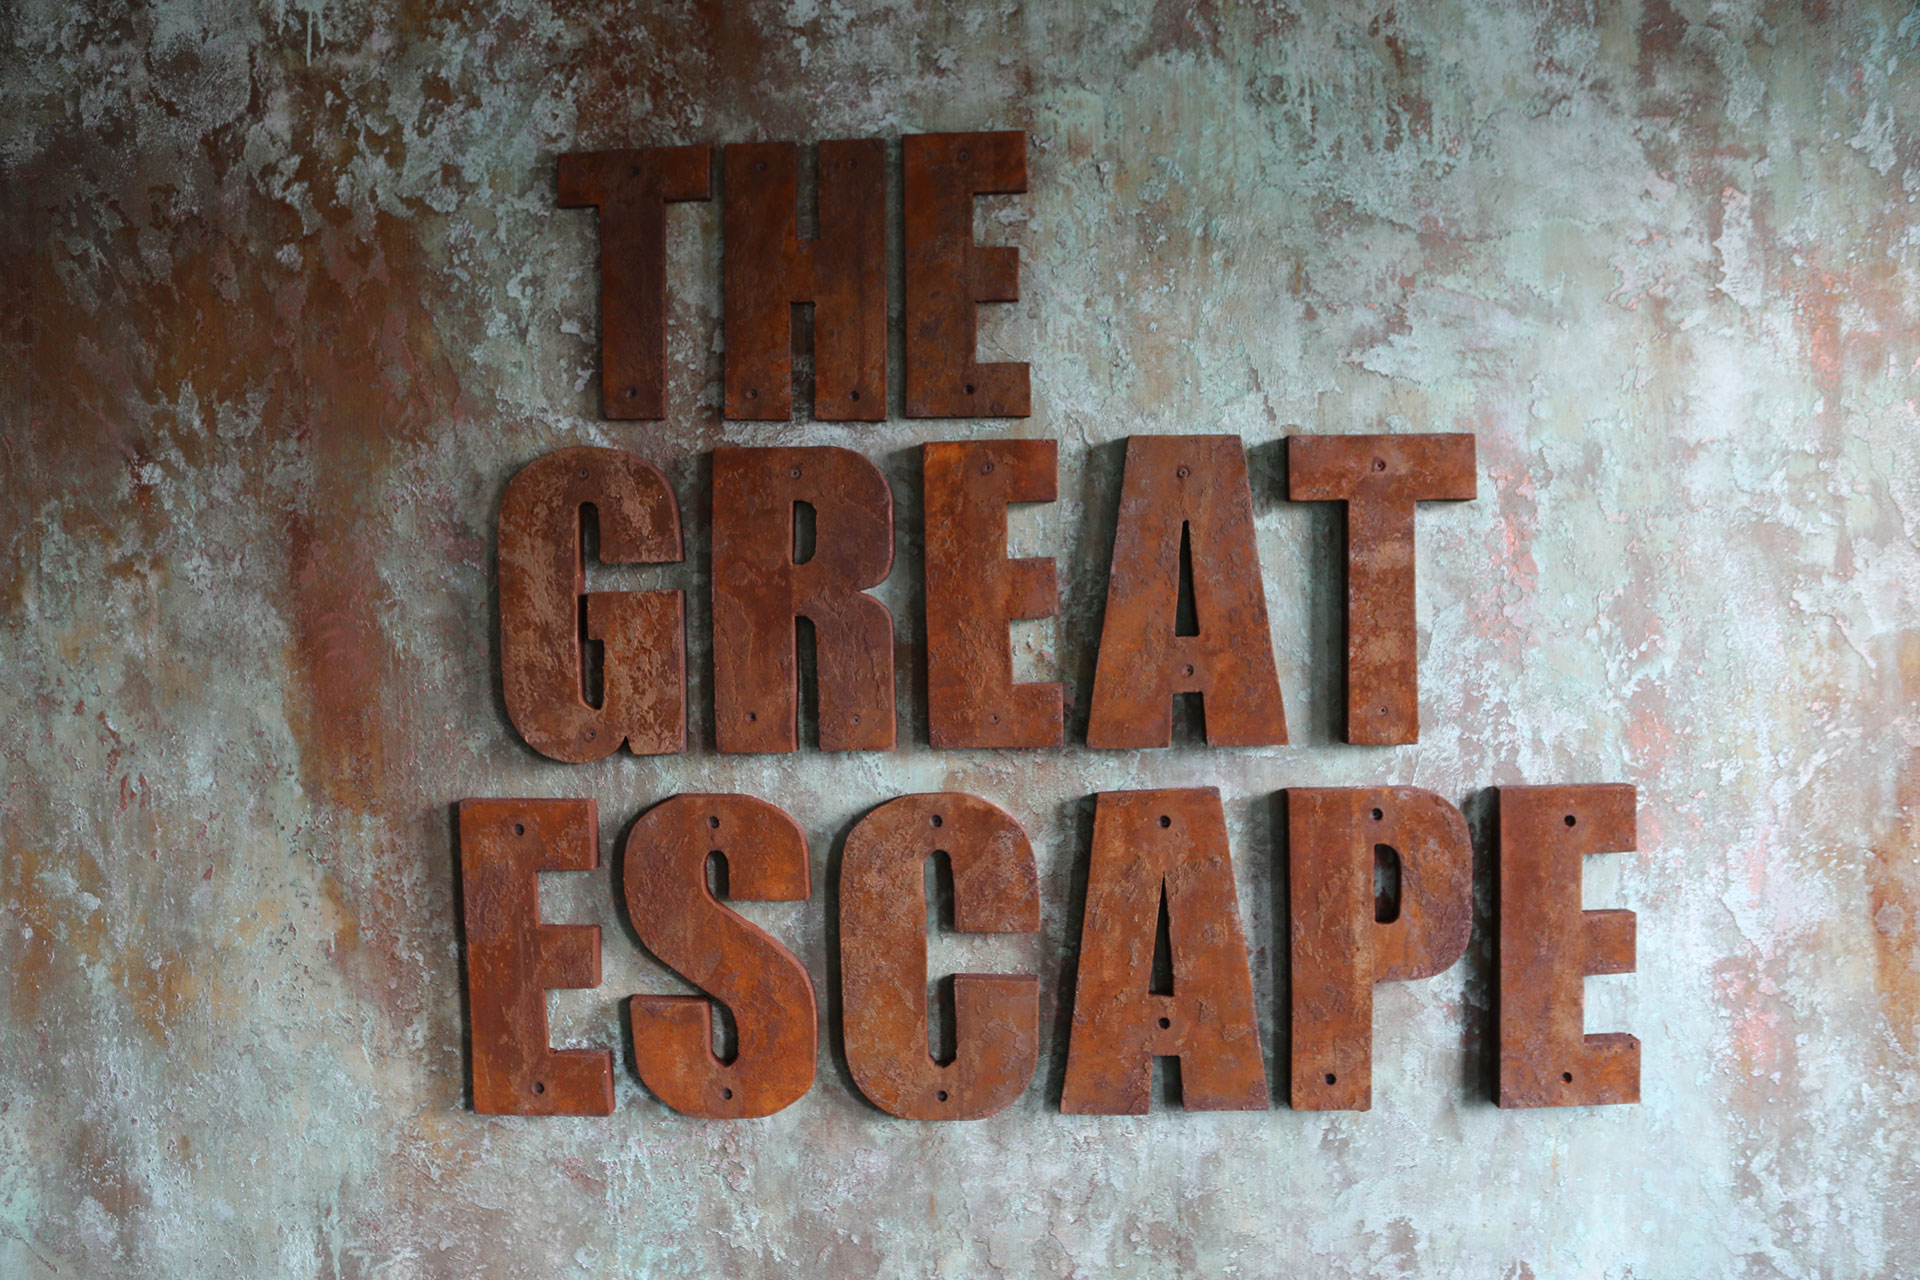 The Great Escape sign